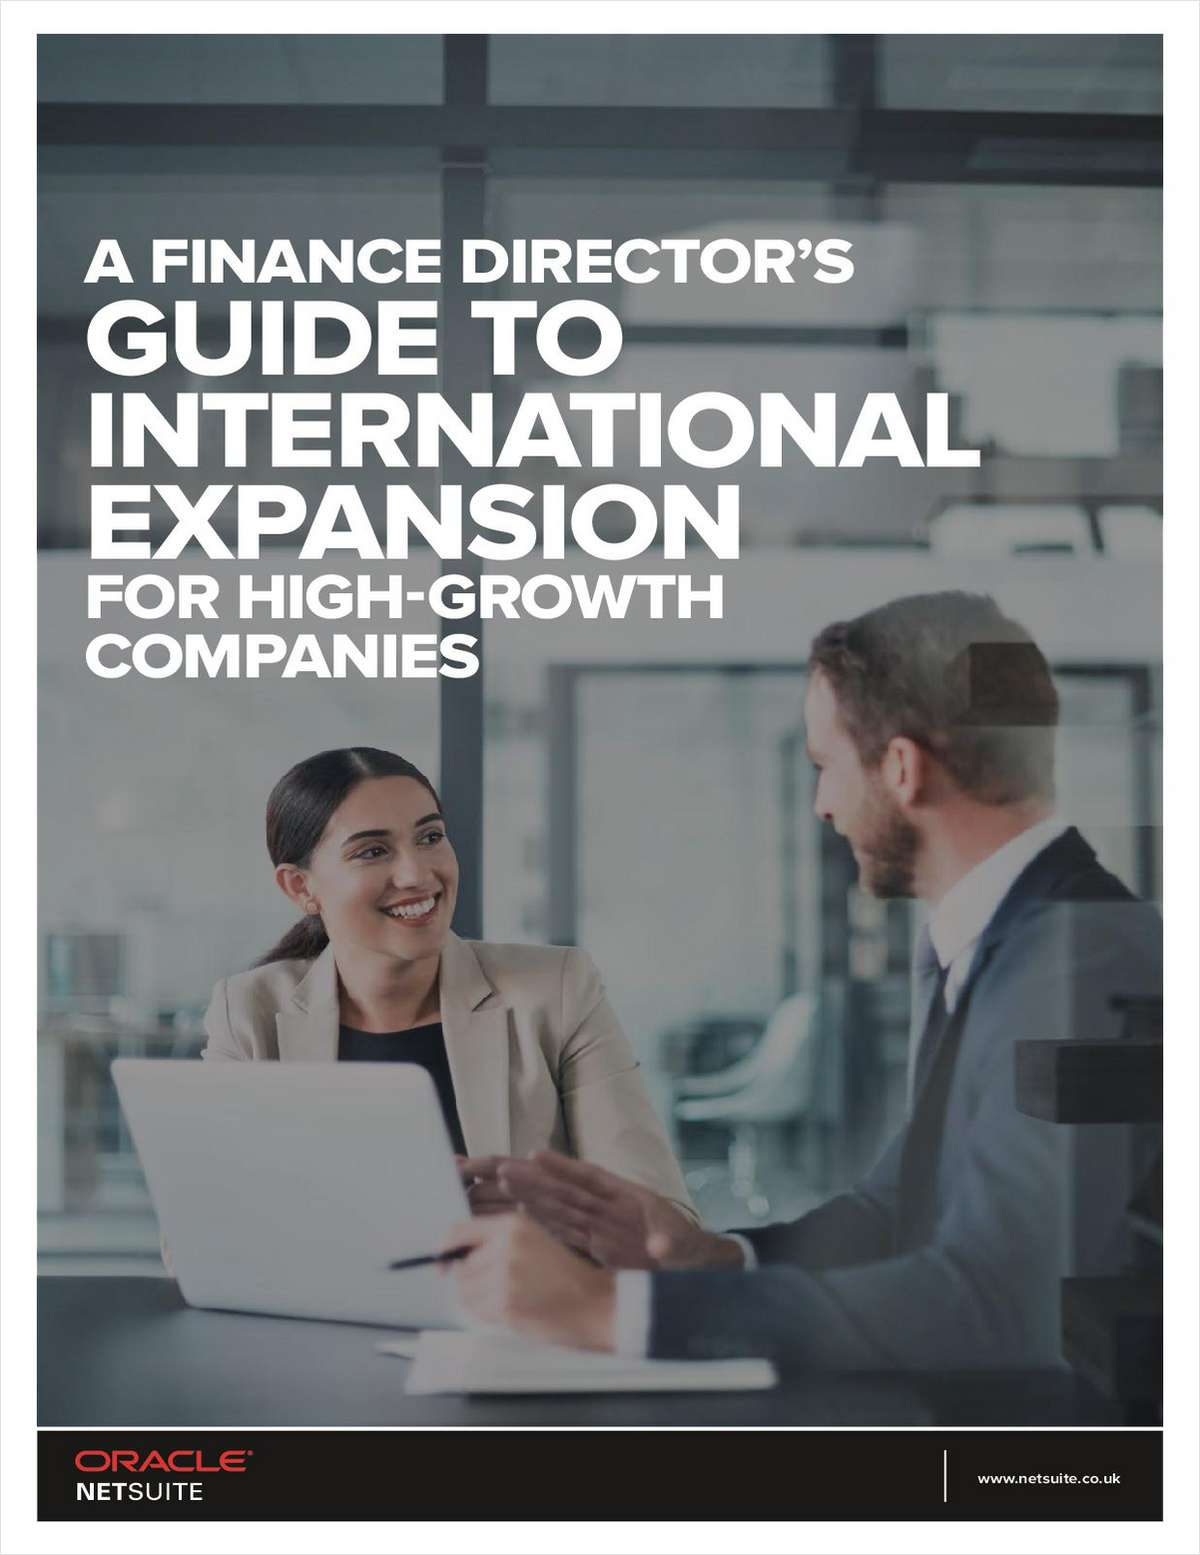 A Finance Director's Guide to International Expansion for High-Growth Companies